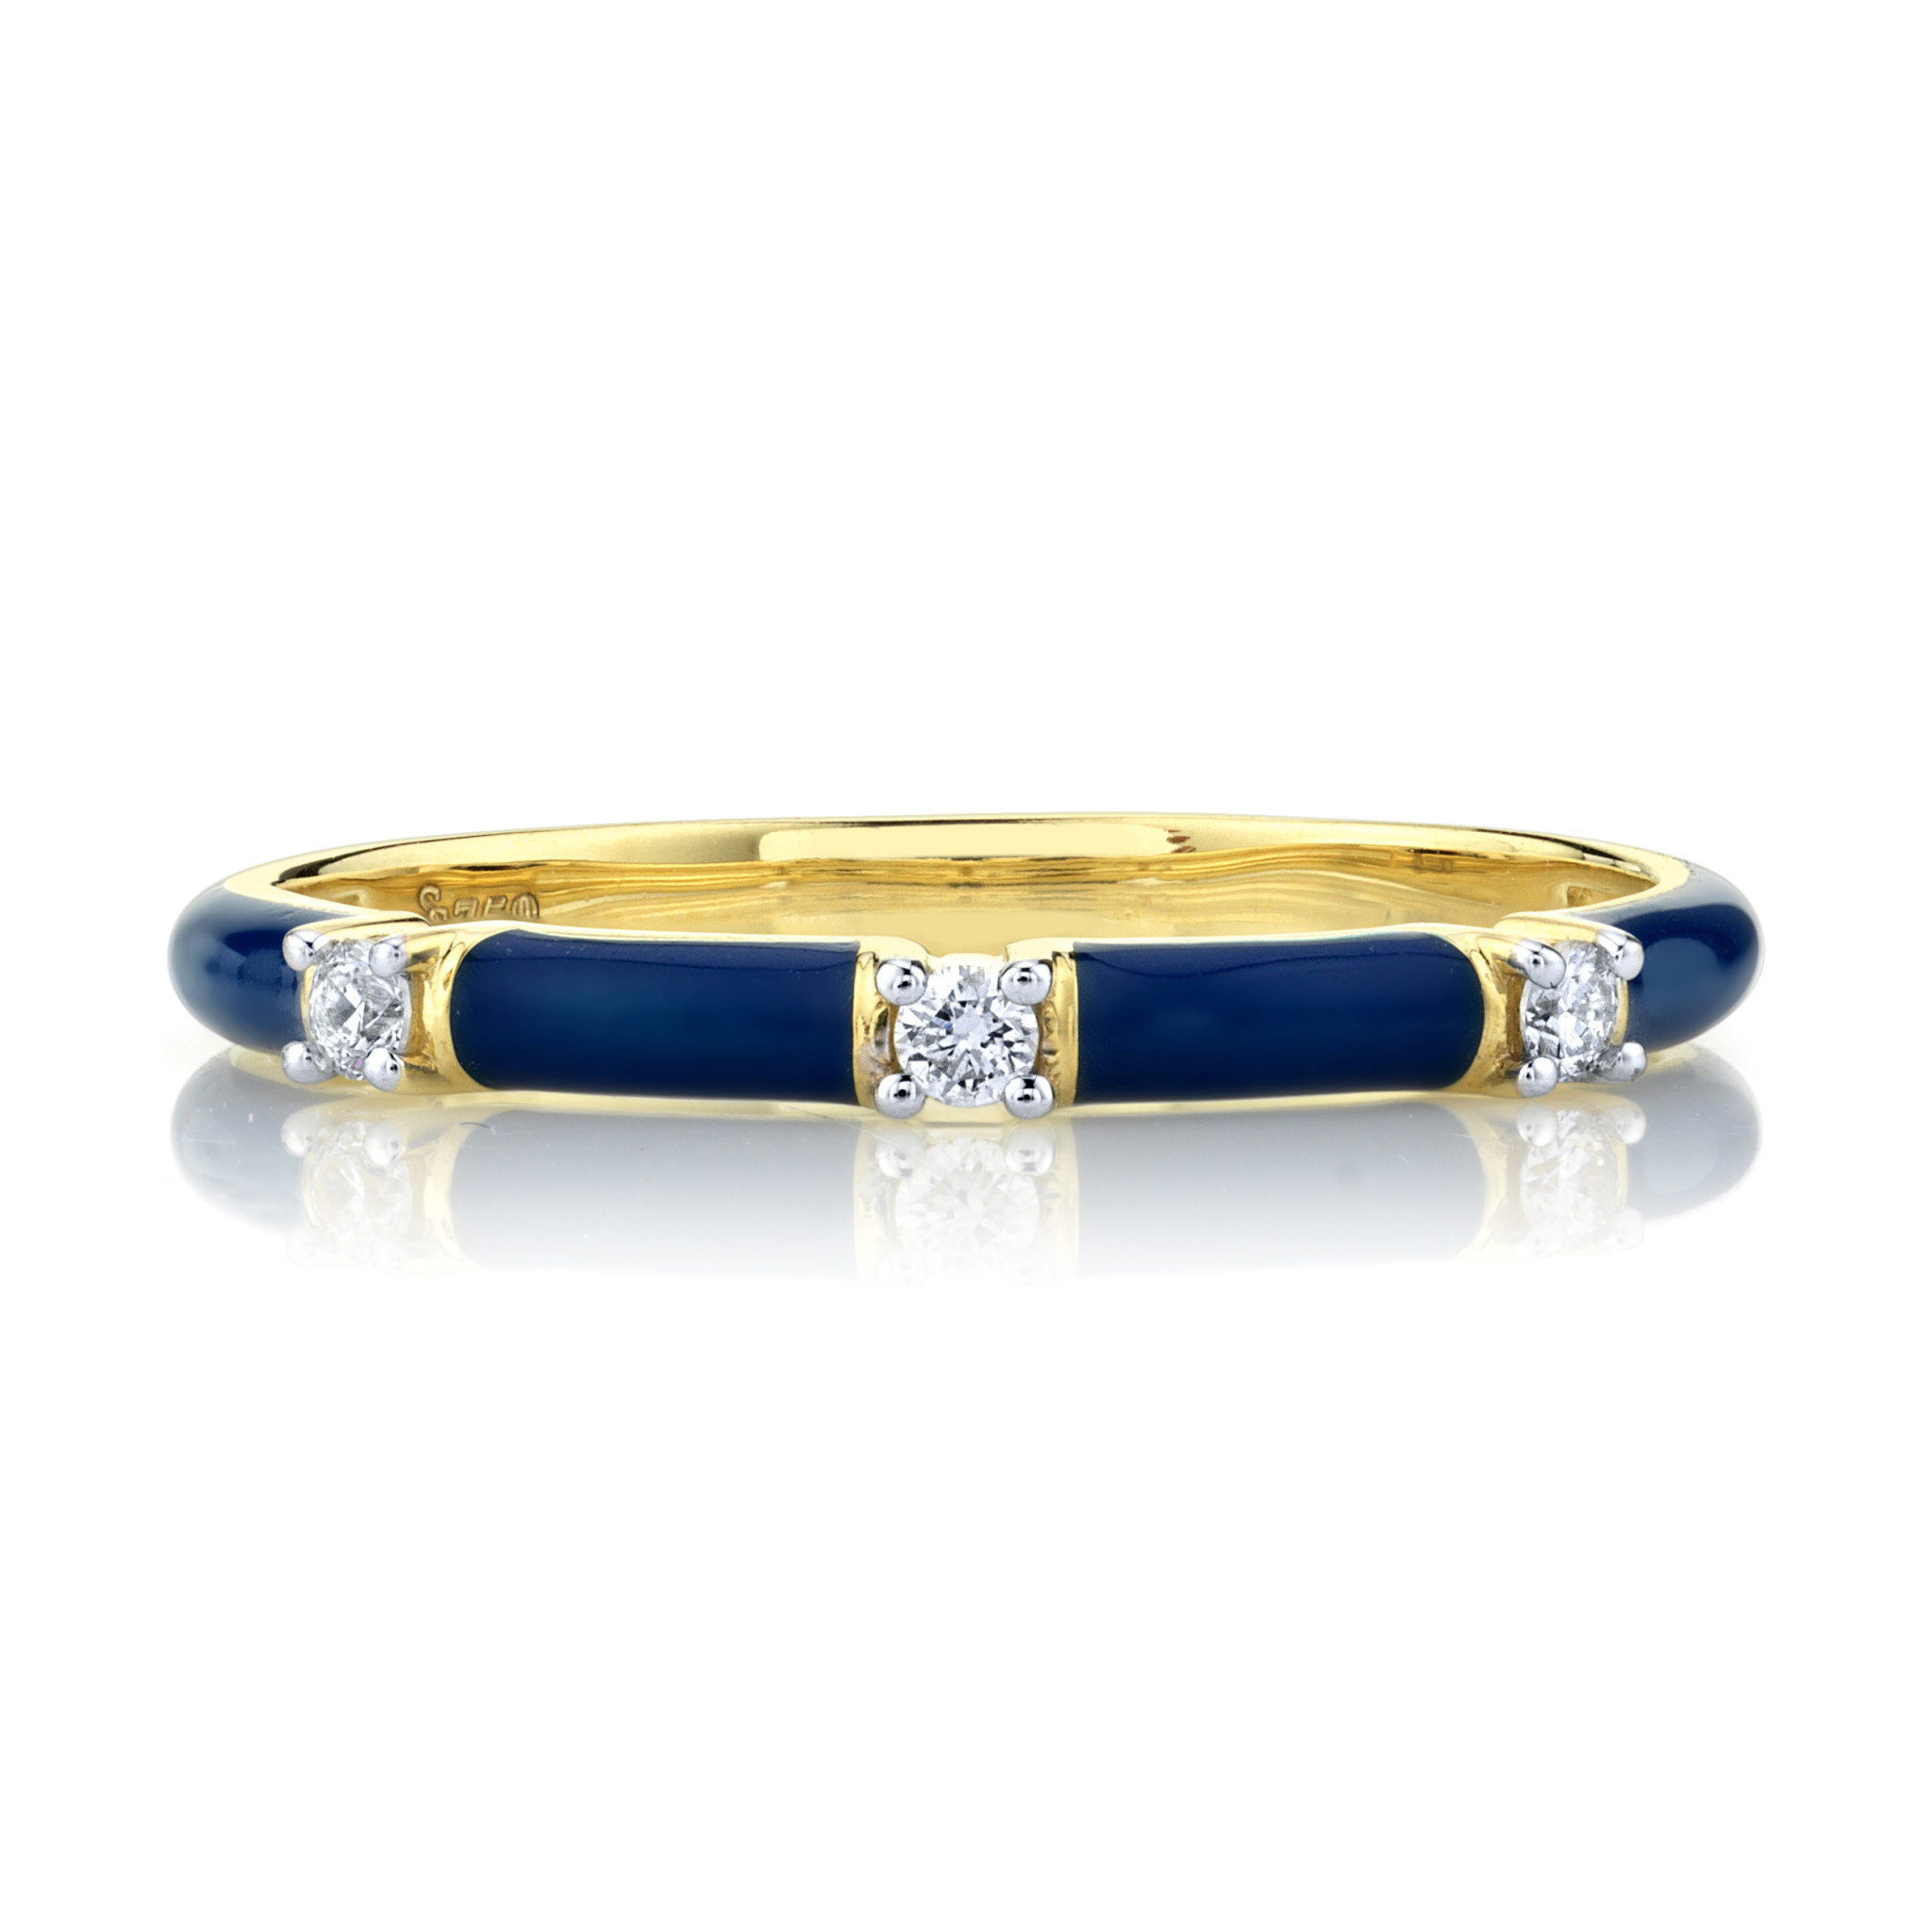 Blue Enamel Stacker Ring with White Diamond Detail 18KY (6)